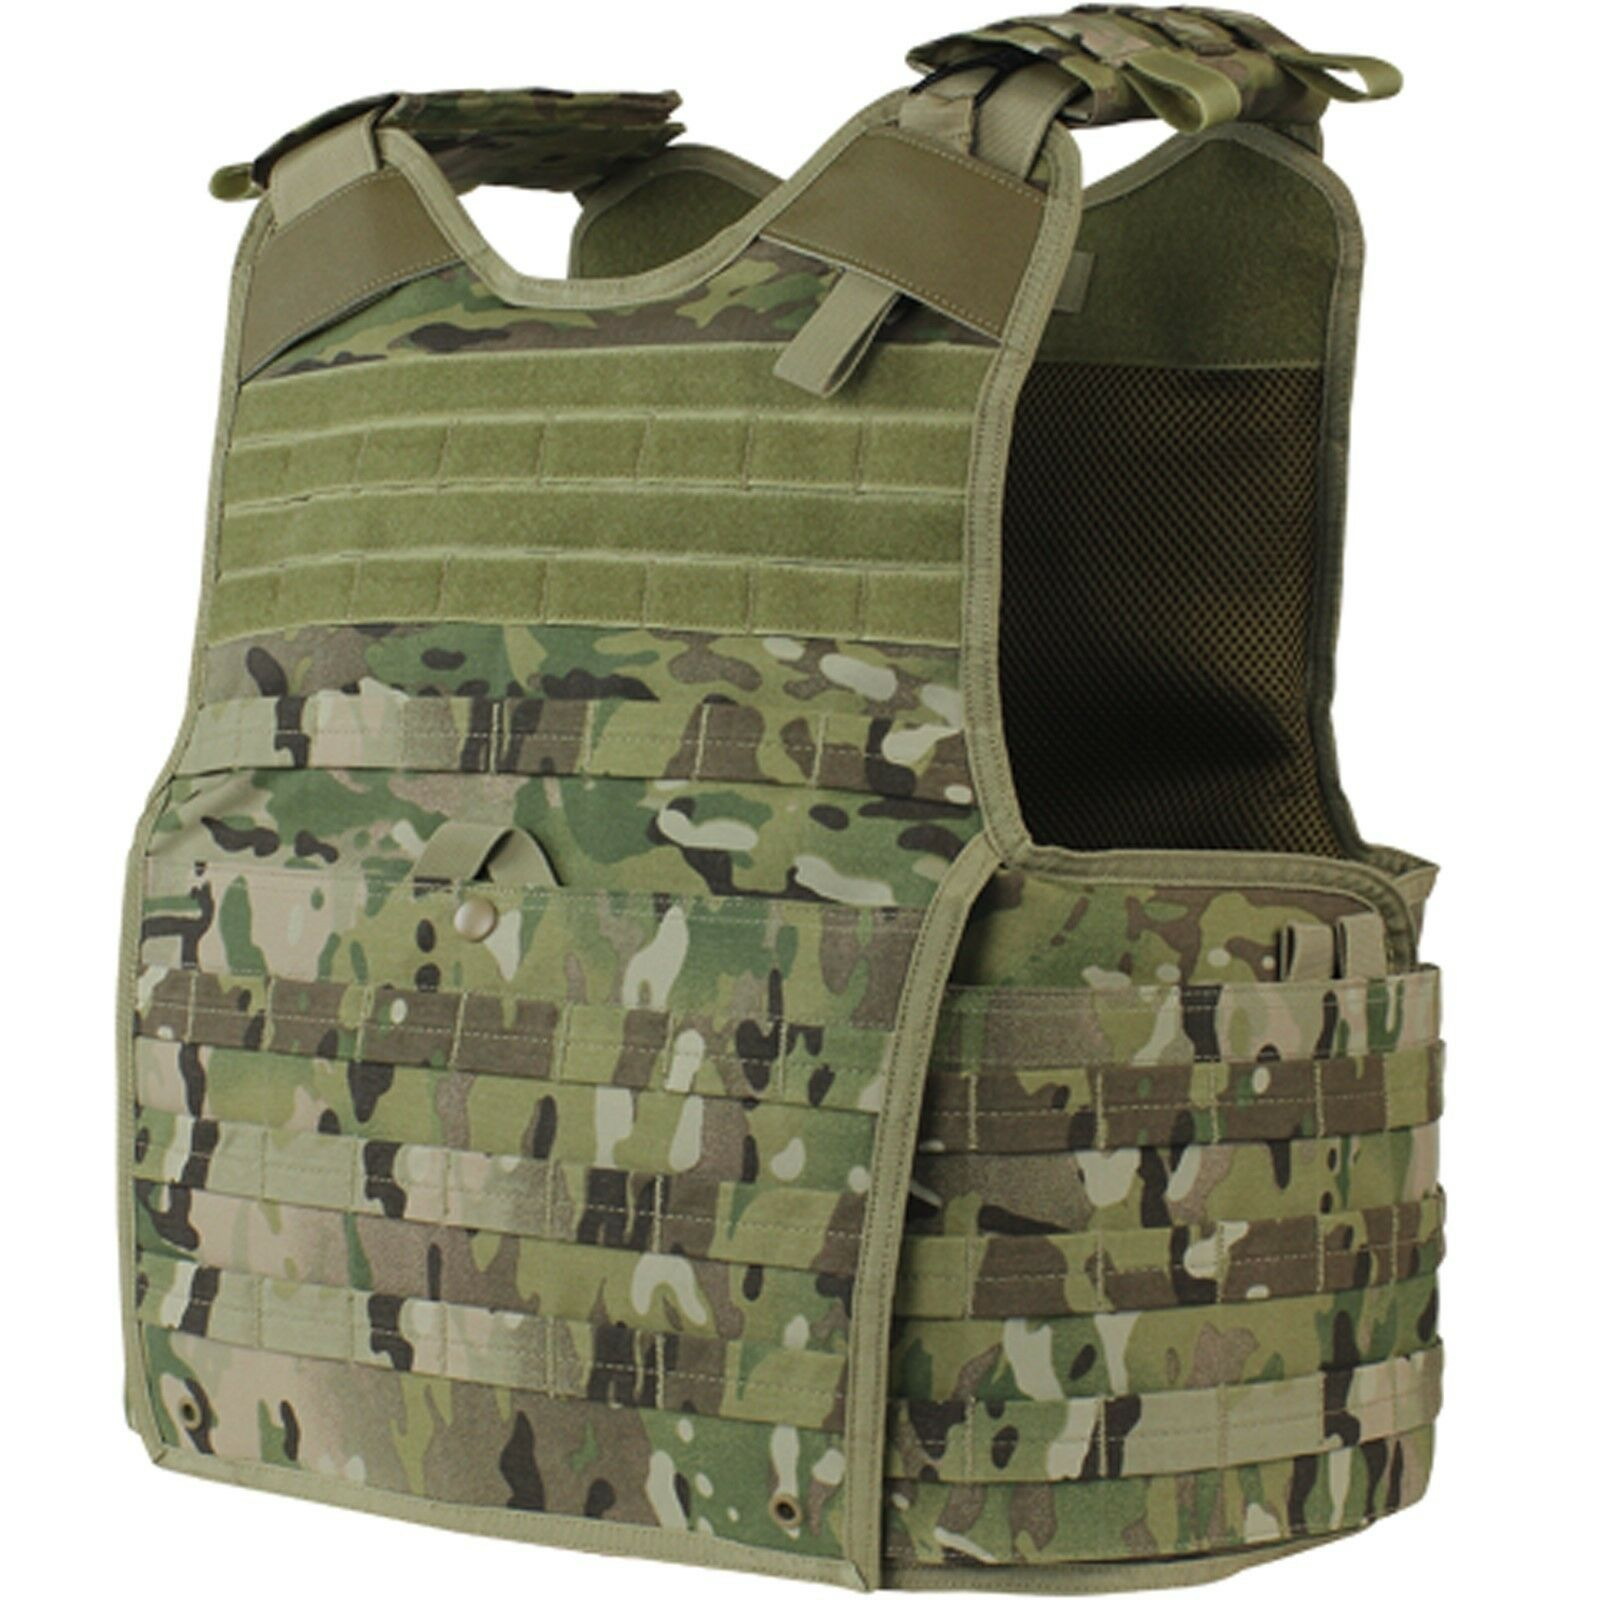 Condor Multicam Tactical  MOLLE PALS Modular Enforcer BALCS SPEAR Plate Carrier  happy shopping